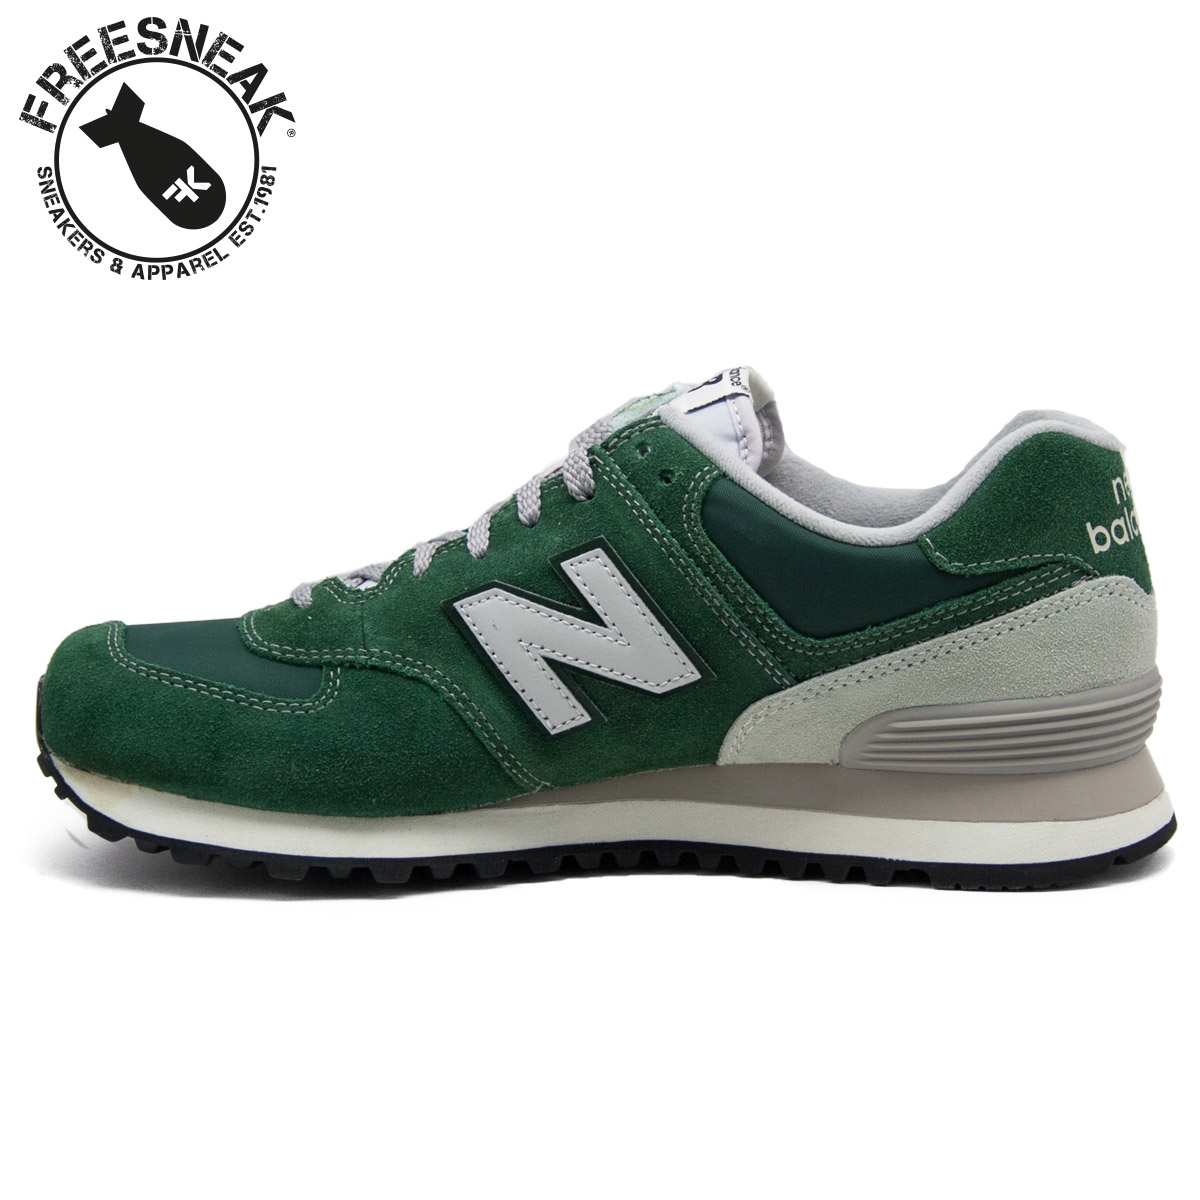 new balance 574 green suede purse